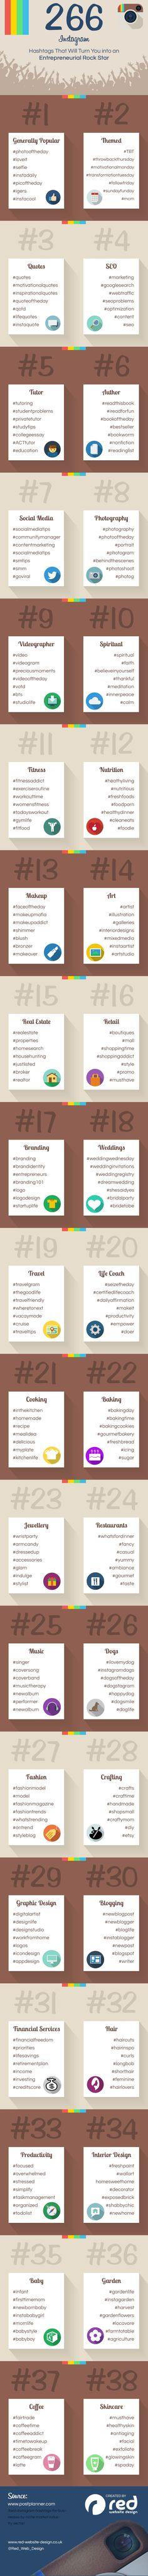 266 Business Hashtags to Expand Your Reach on Instagram [Infographic] | Social Media Today